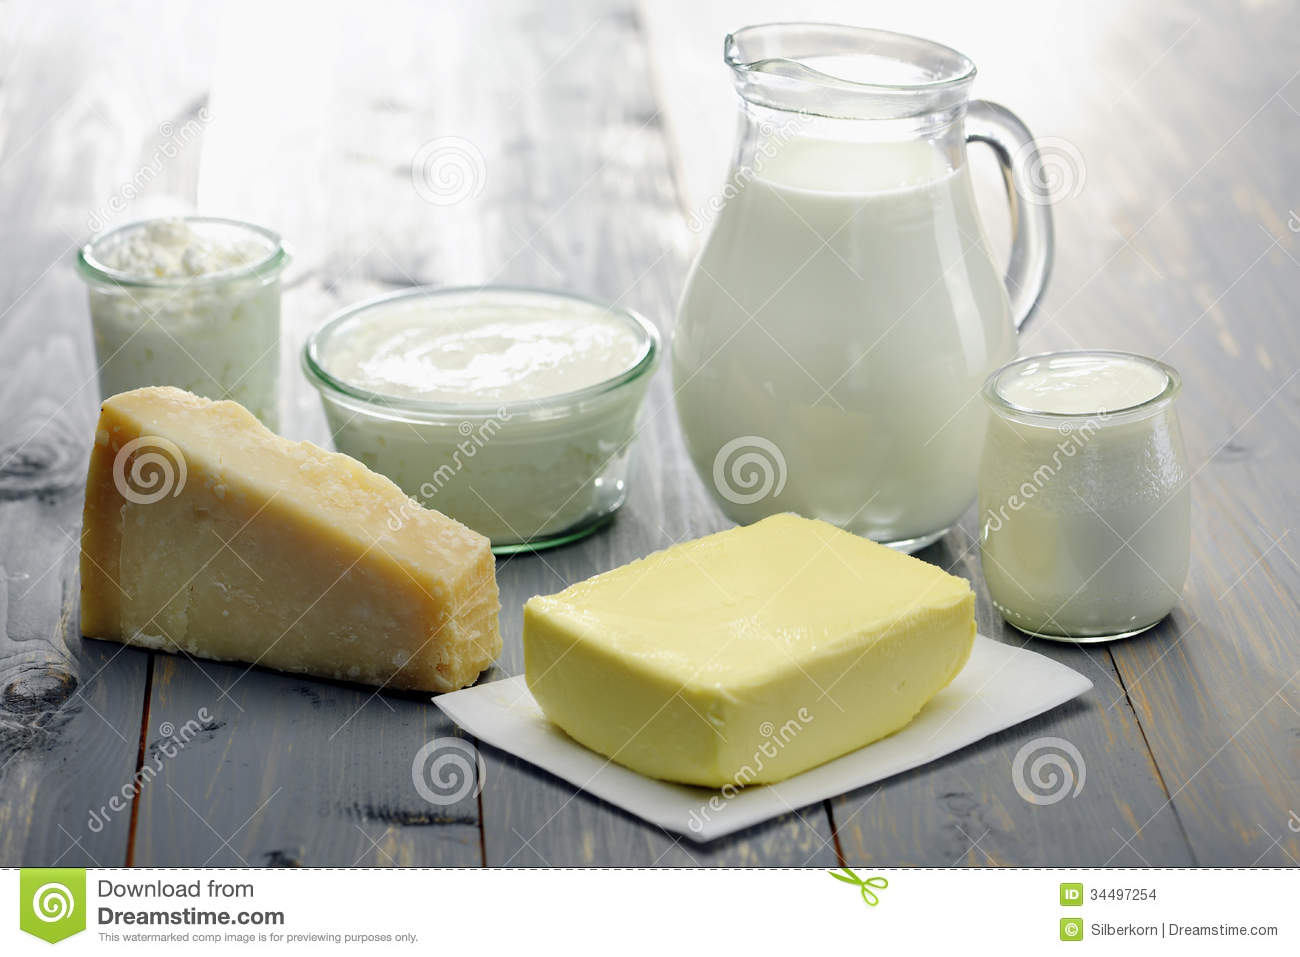 Diary products milk cheese ricotta yogurt and butter